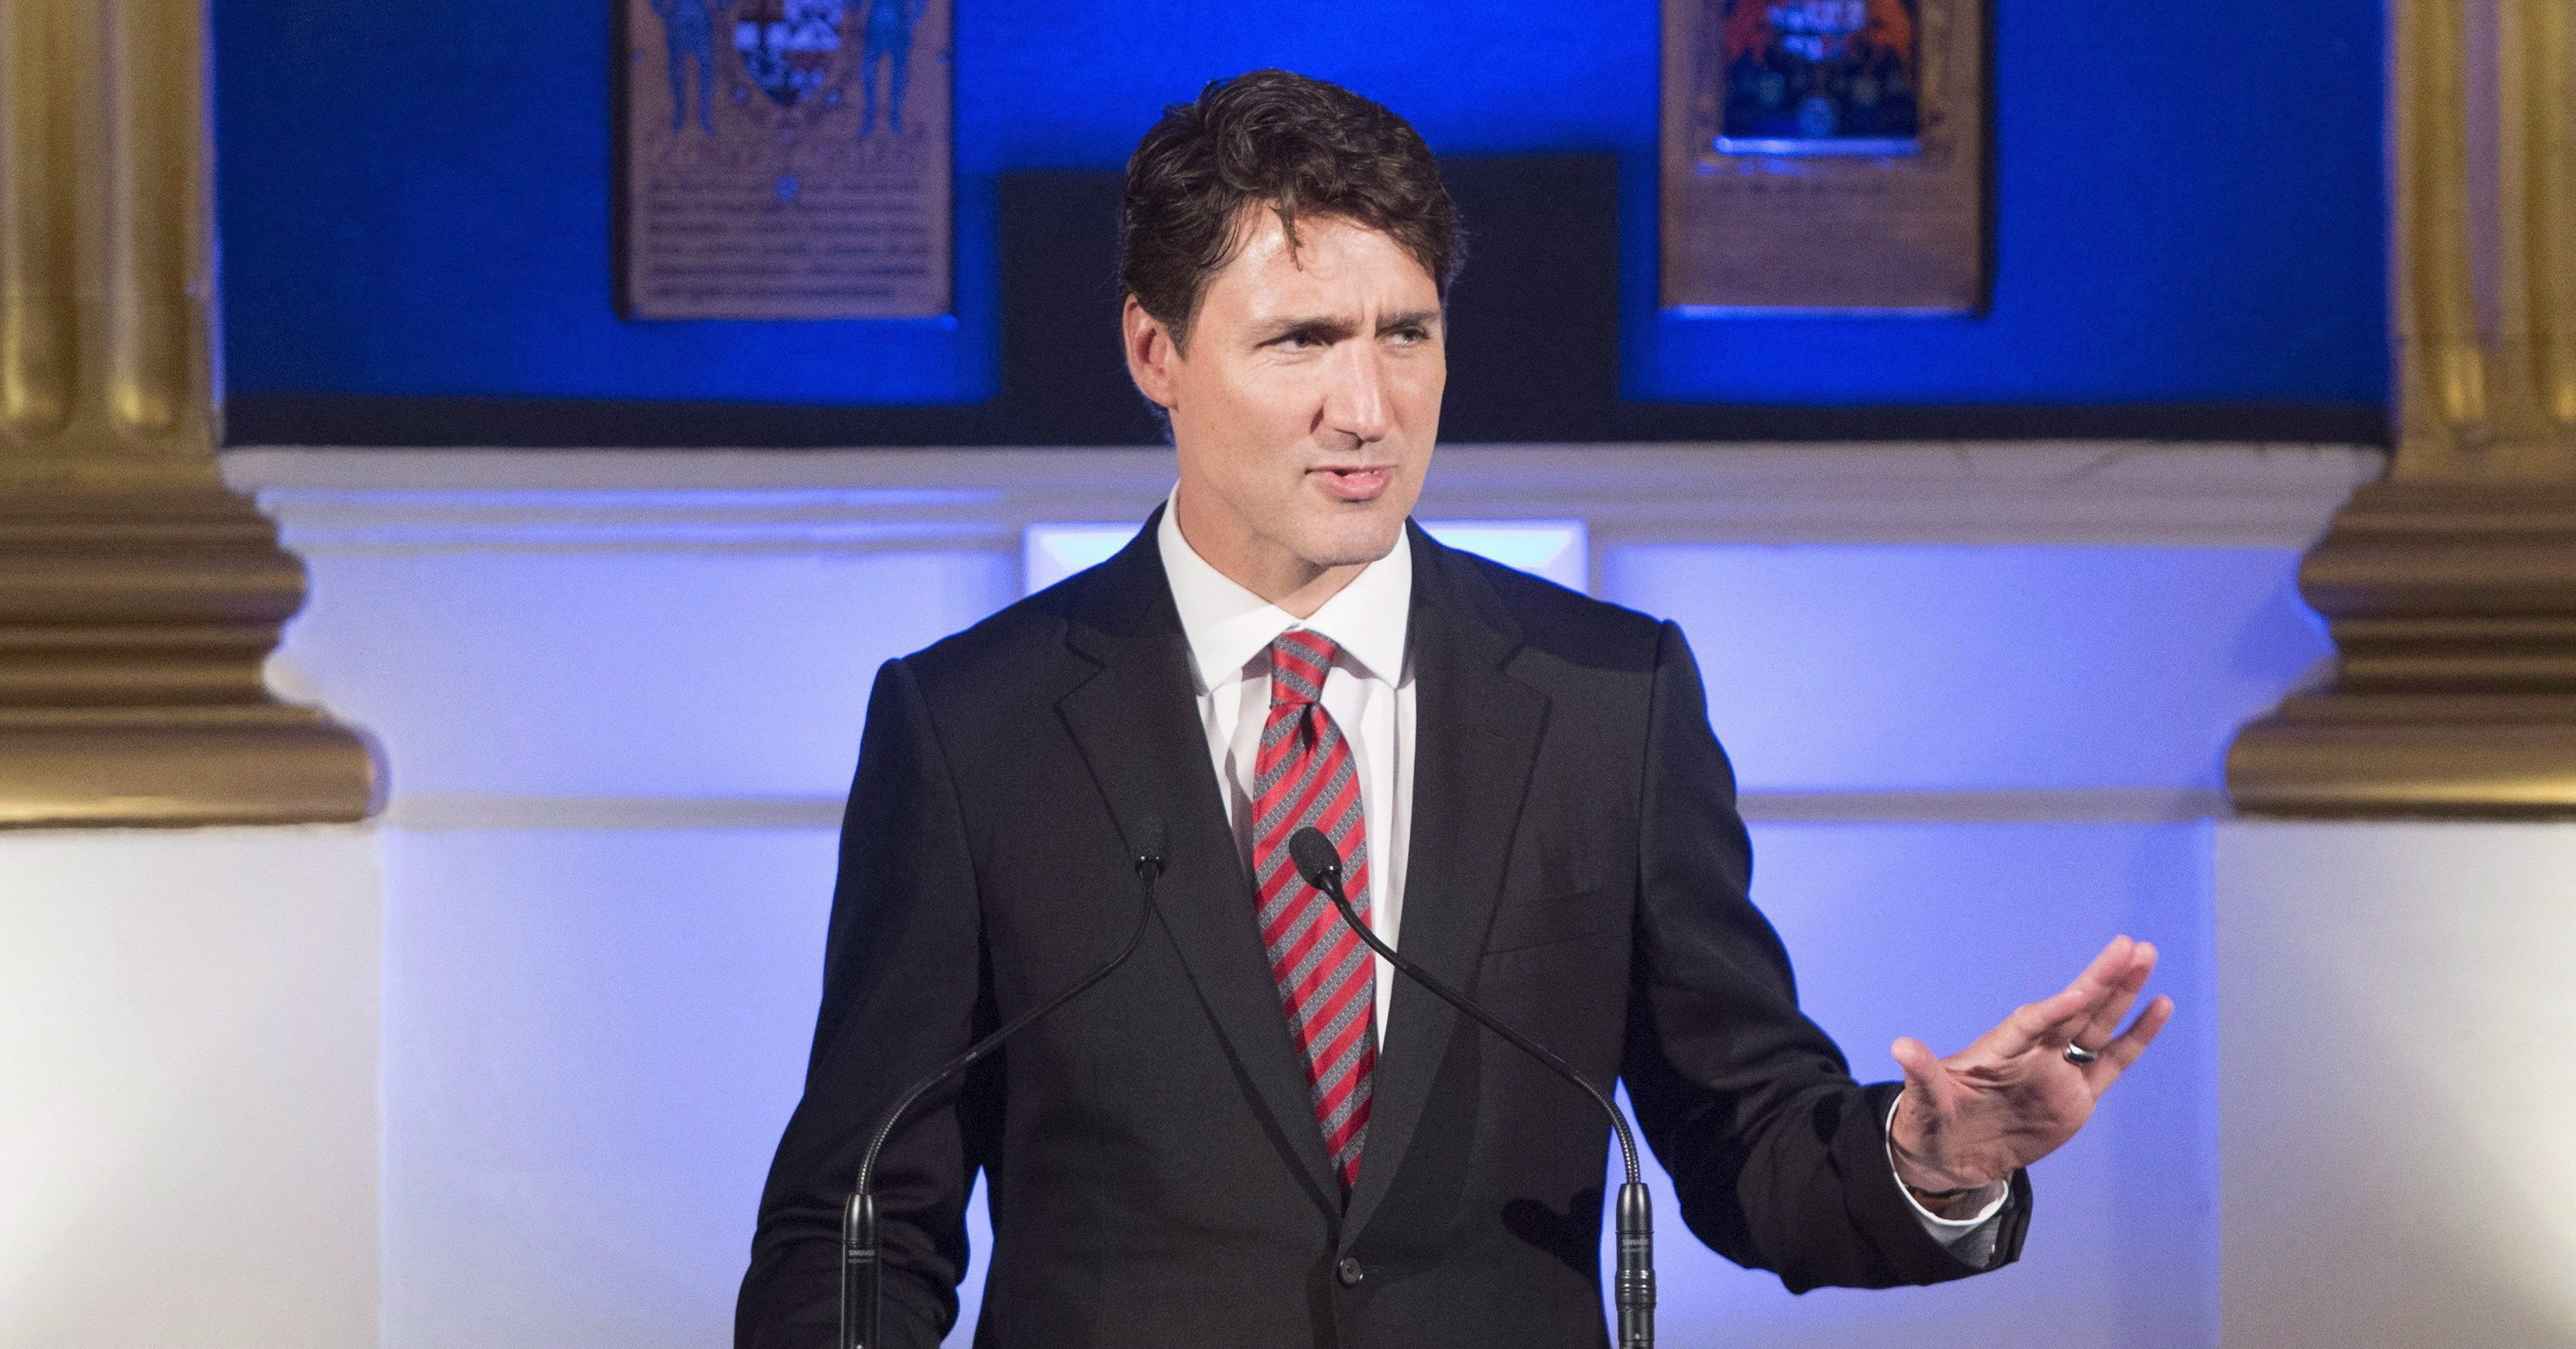 No, Trudeau Did Not Give $241.5 Million To The Clinton Foundation